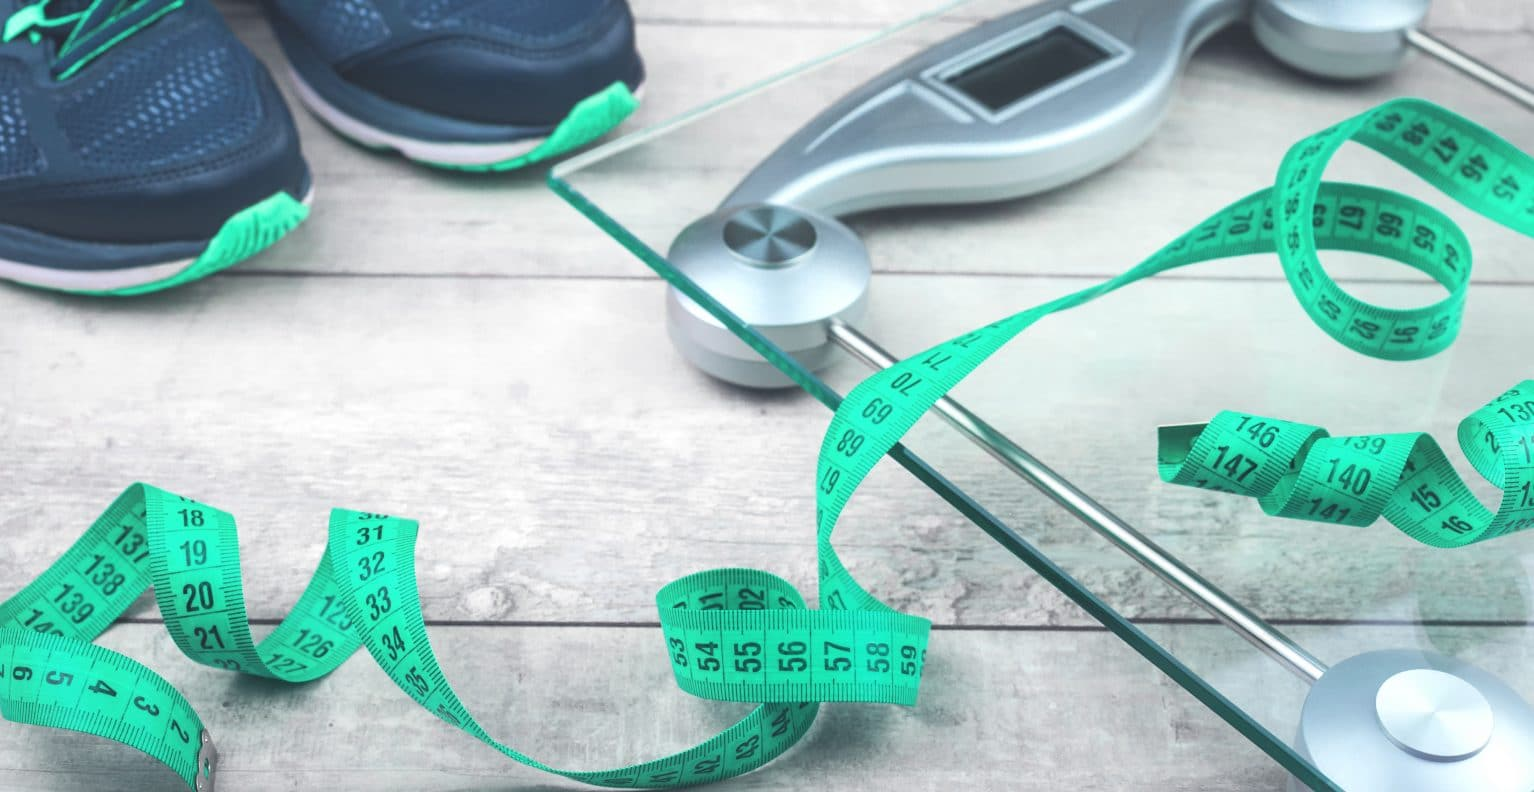 obesity management scale and measuring tape